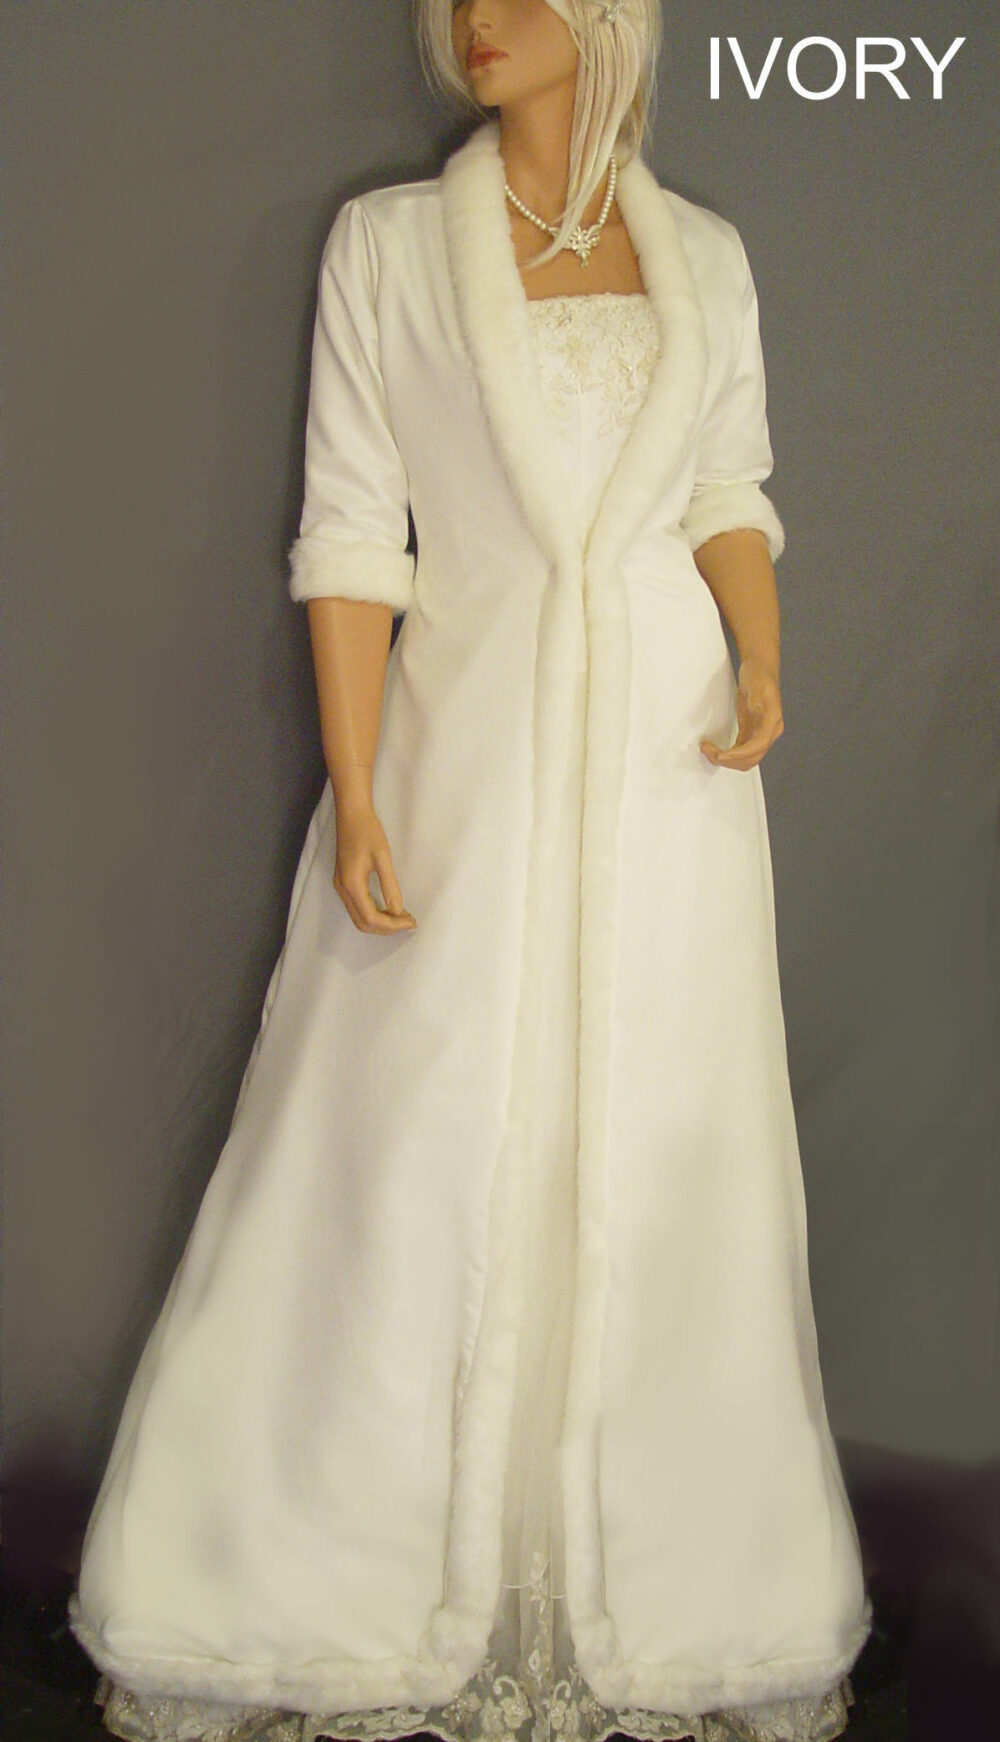 Full Length Satin Bridal Coat Wedding Jacket With Faux Fur Trim & 3/4 Sleeves Winter Bride Cover Up Clk205 Avl in Ivory & One Other Color